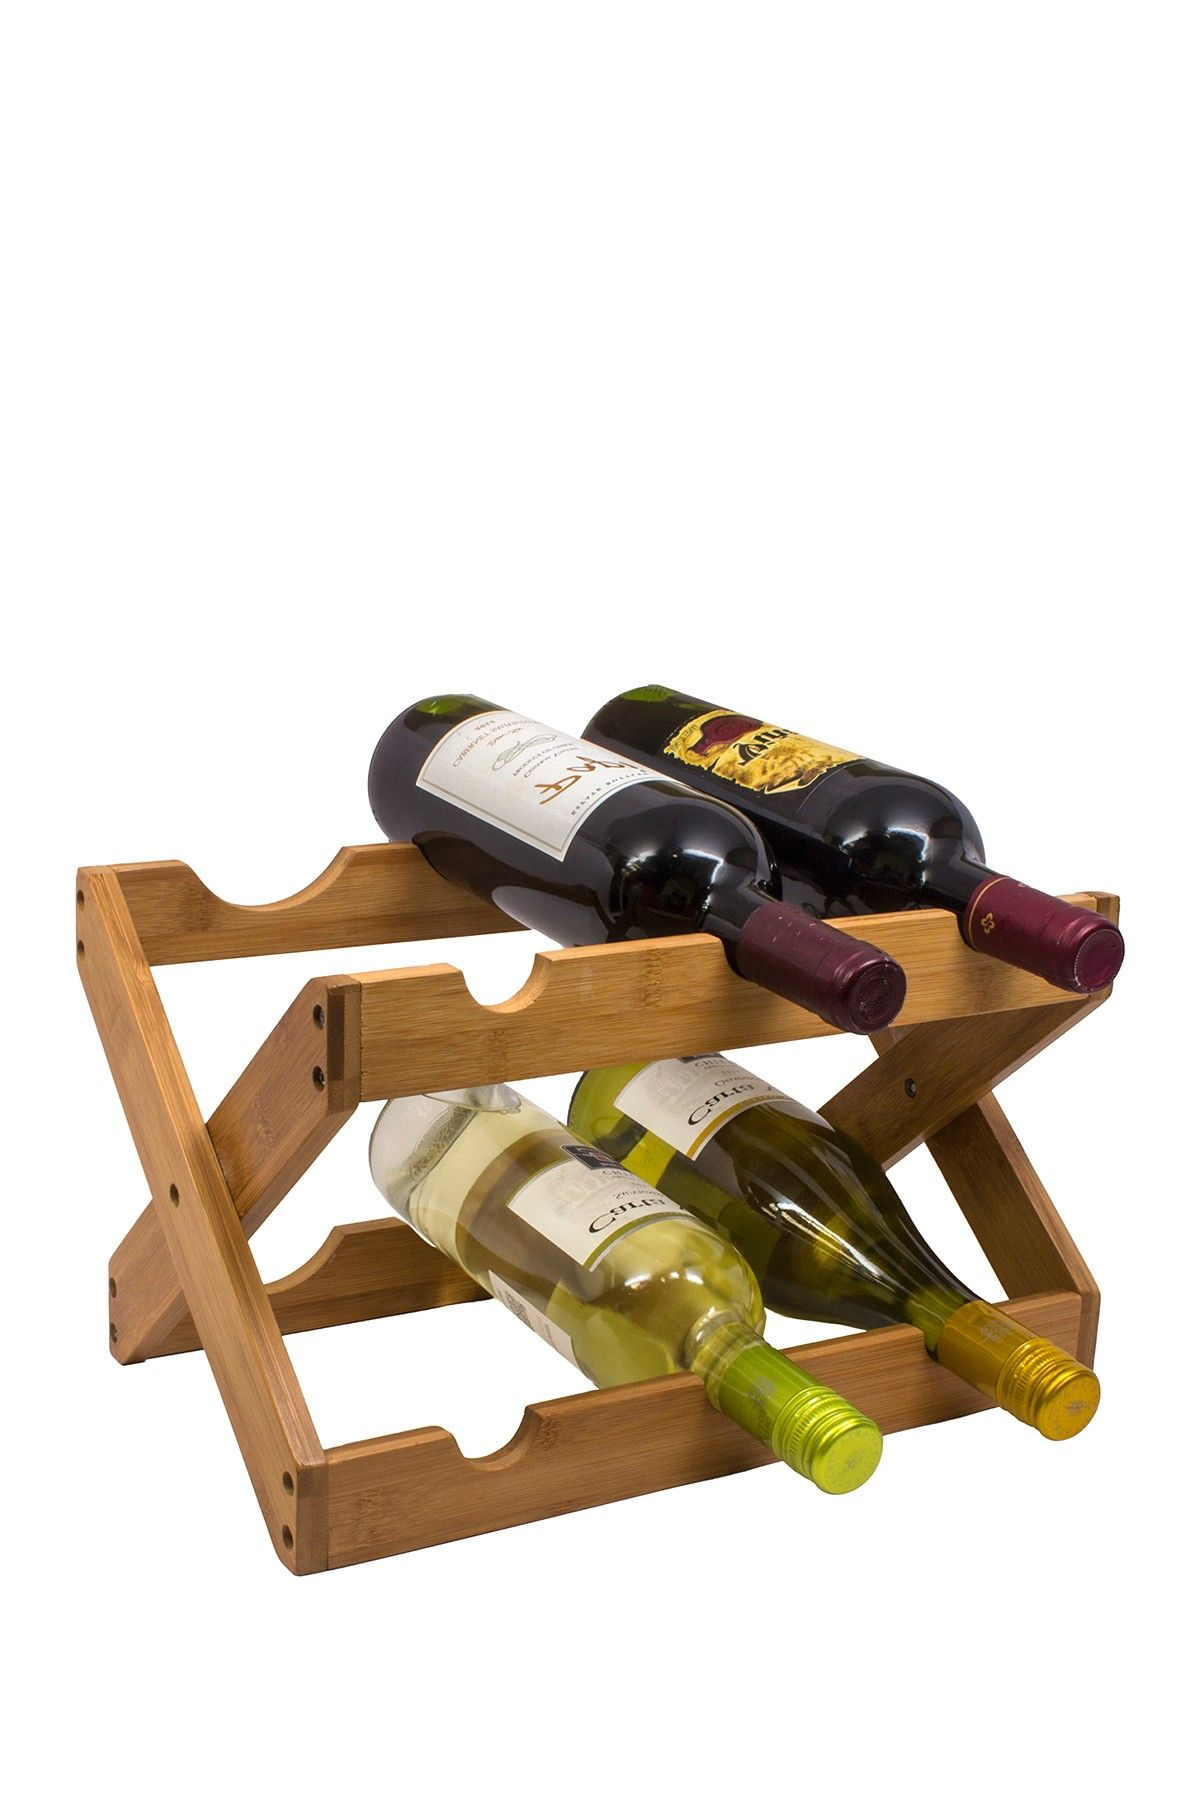 countertop store cross crisscross rack wine folding racks products criss the countertops vinepair